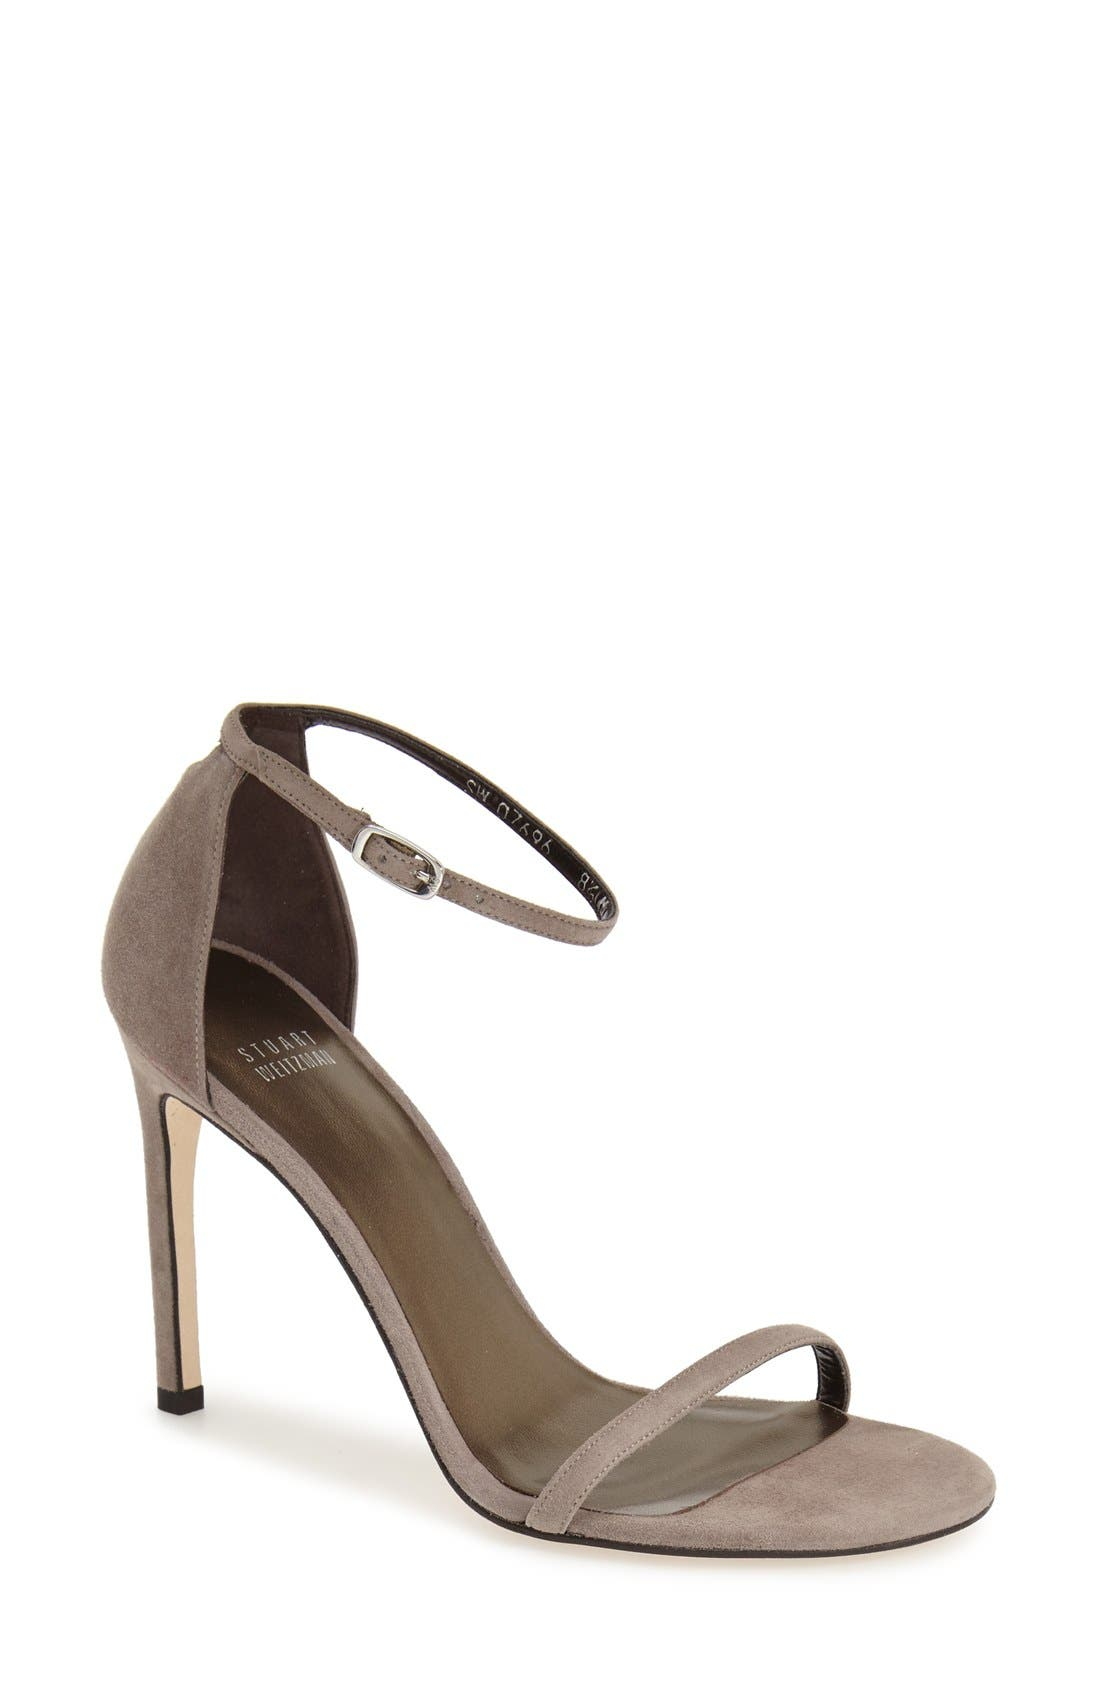 Nudistsong Ankle Strap Sandal,                             Main thumbnail 20, color,